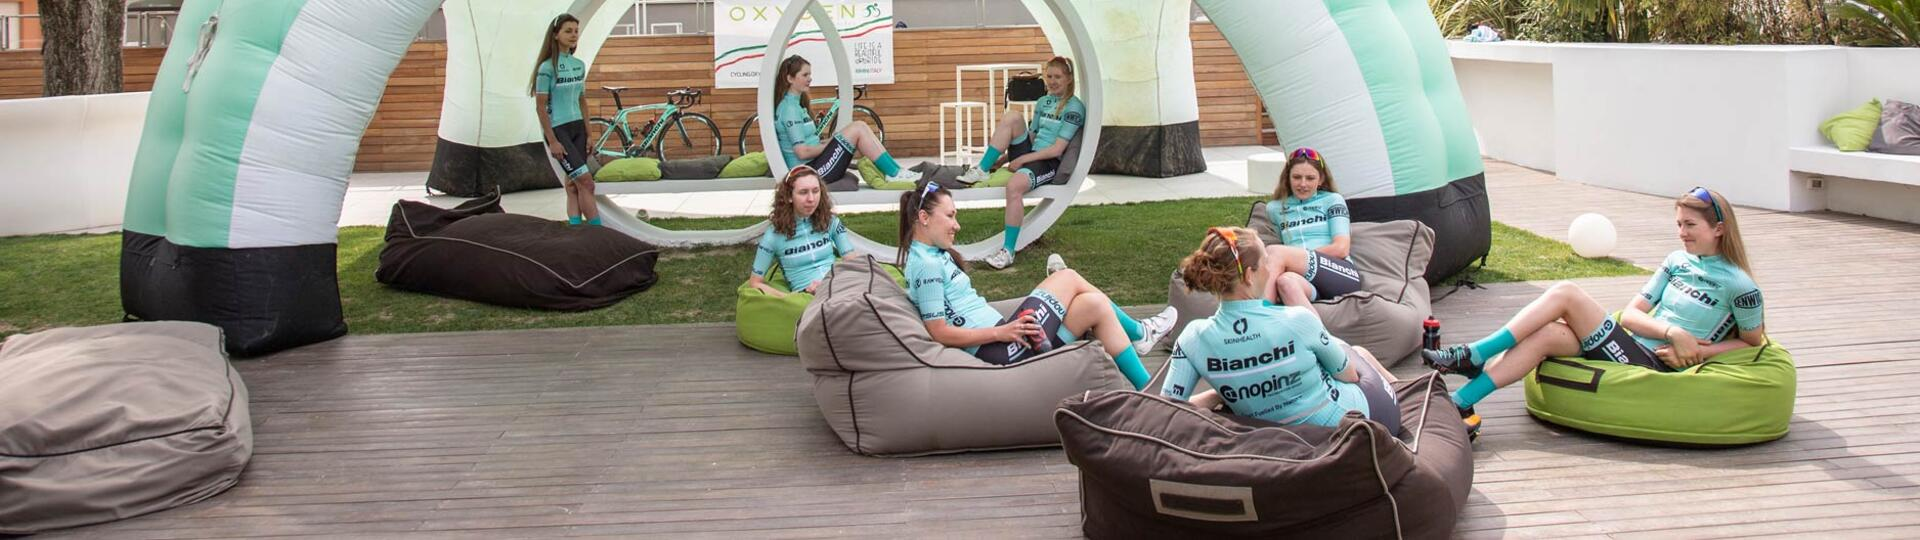 cycling.oxygenhotel en weekend-bike-tour-on-half-board-with-stay-in-b-b-with-special-arrangement 012